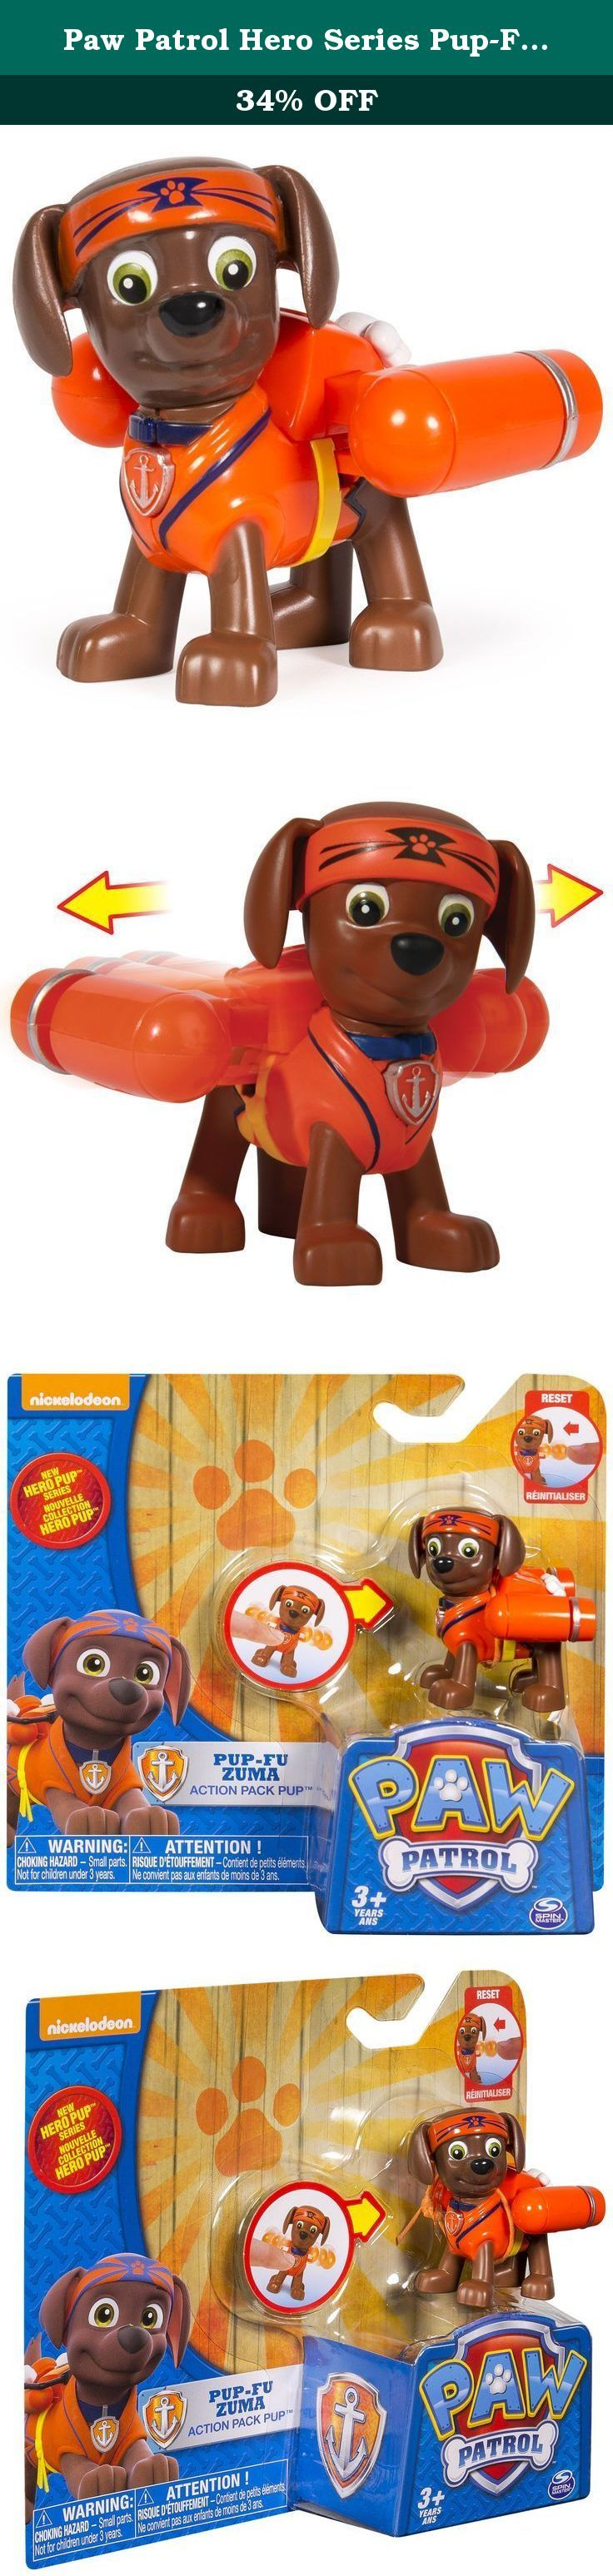 Paw Patrol Hero Series Pup-Fu Zuma. No job is too big, no pup is too small! Now you can join the Paw Patrol Pups on a Paw Patrol Mission with Ryder's Ride On! Just like in the show you can ride with Paw Patrol Pups when an emergency arises. Whether there's rescue mission in your backyard or you have to save Itty Bitty Kitty from a tree, you can race to the ruff-ruff rescue with Ryder's Ride On.